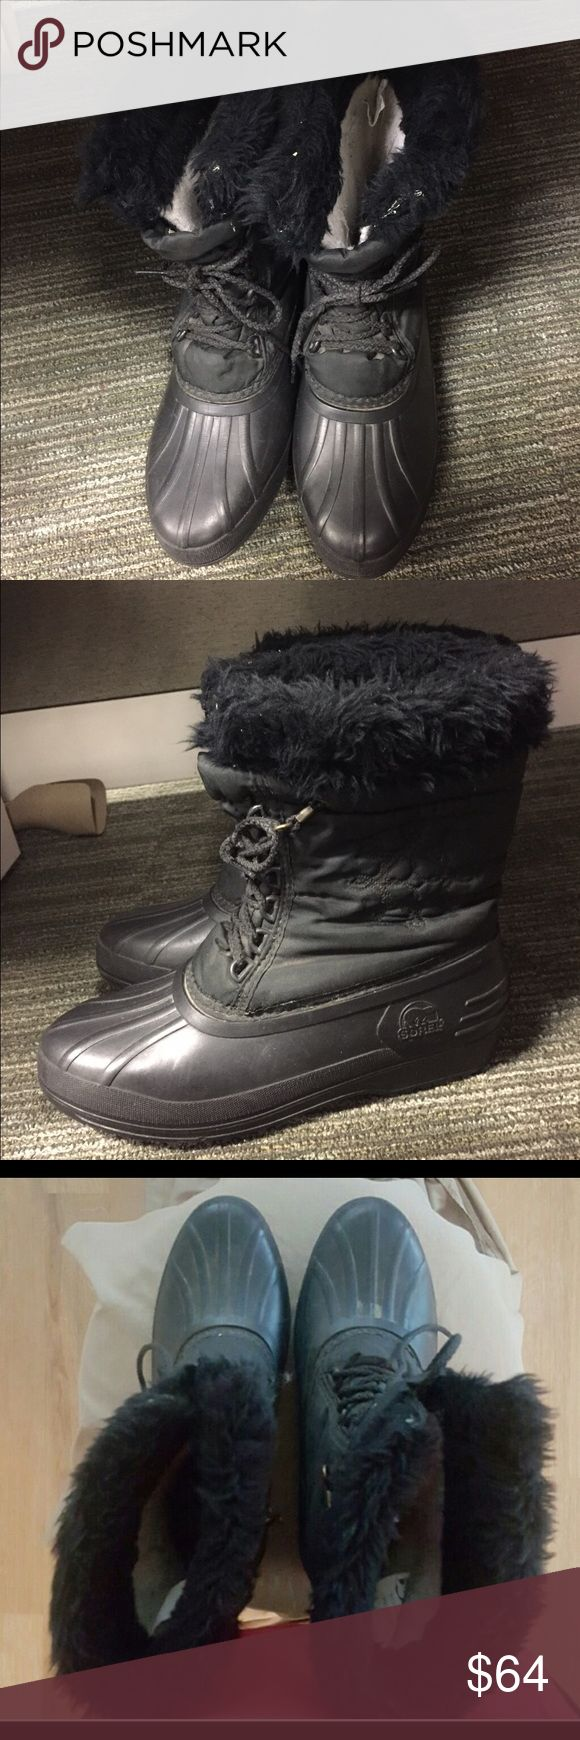 Black Sorel Duck Boots Women's size 8. Black. Great condition. Sorel duck boots perfect for winter. Sorel Shoes Winter & Rain Boots